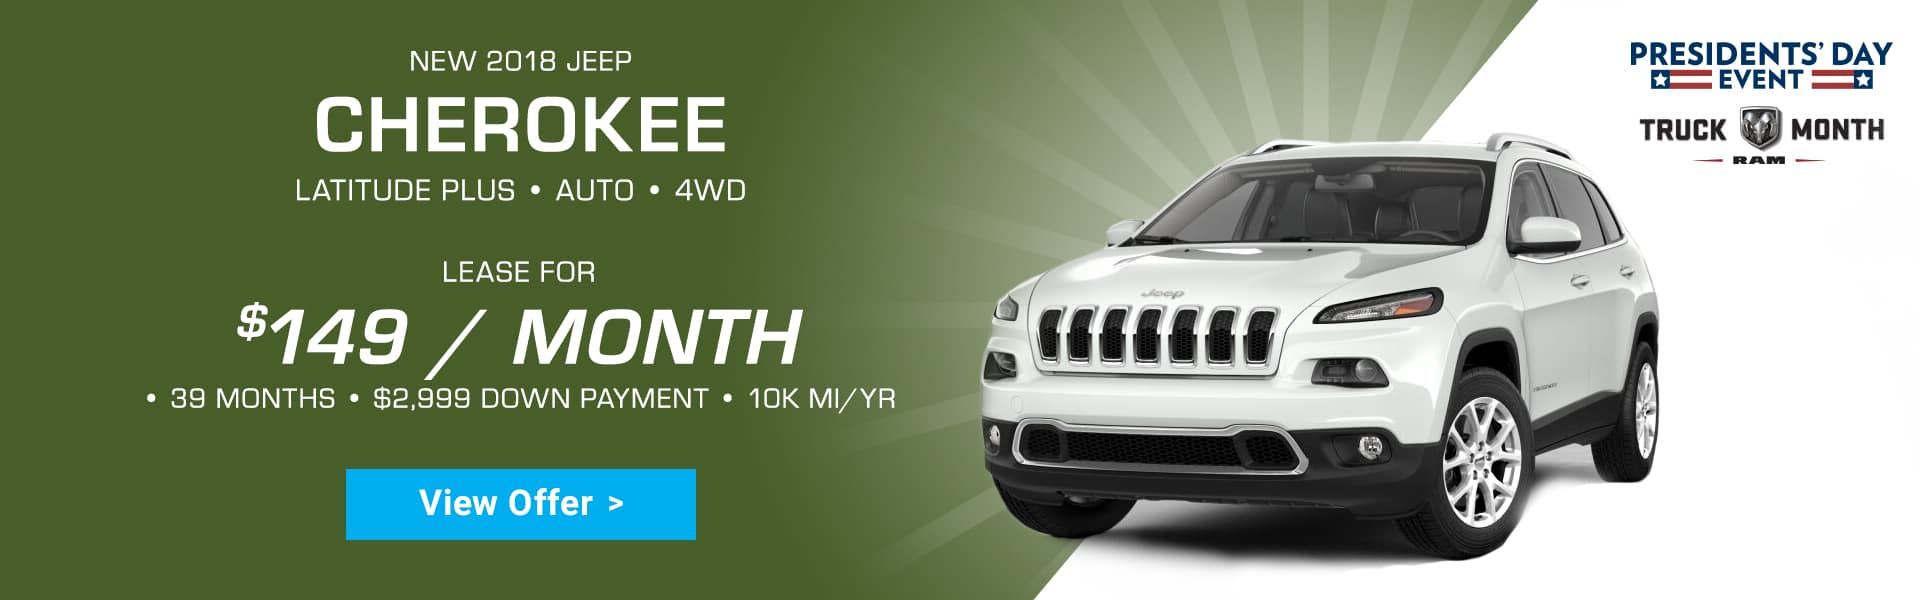 Jeep Cherokee Special Offer